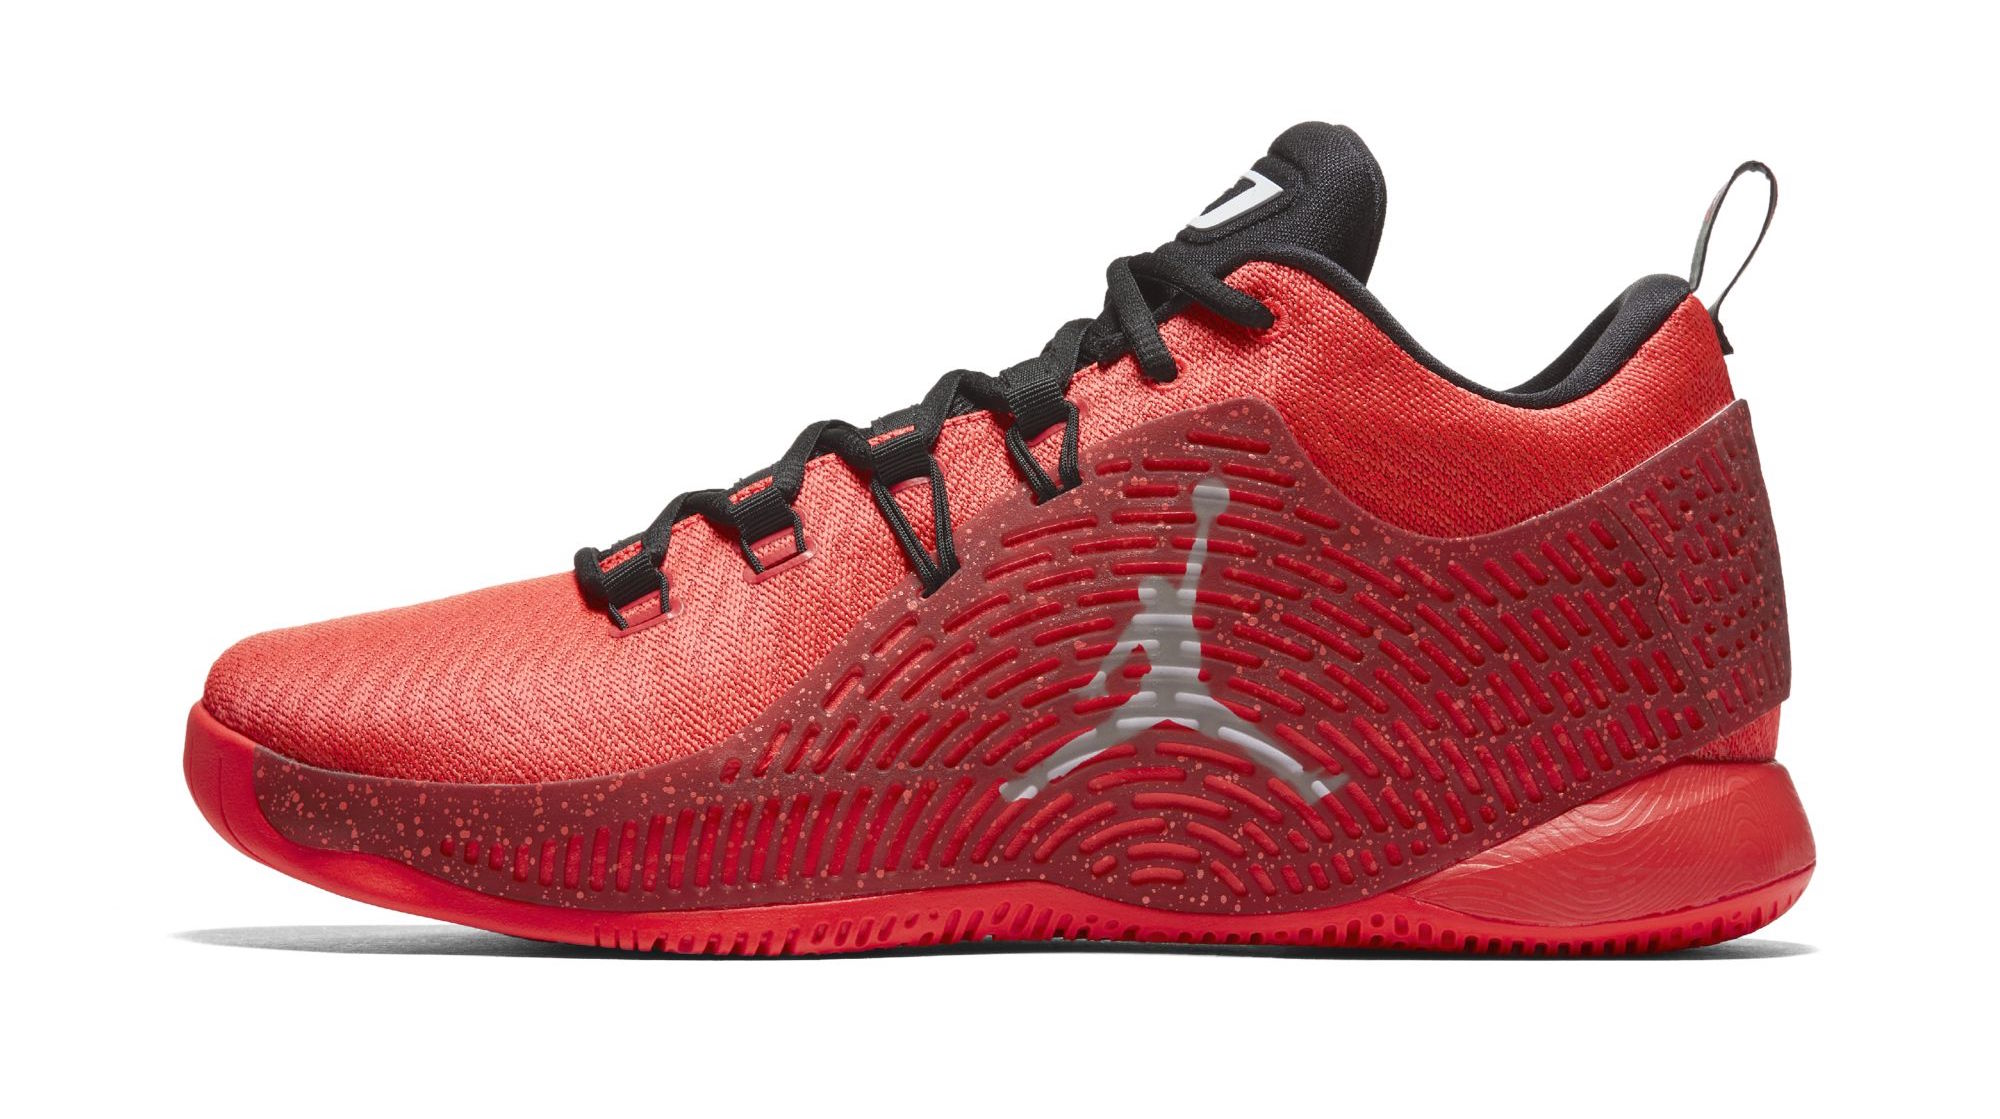 Adidas basketball shoes 2018 for men